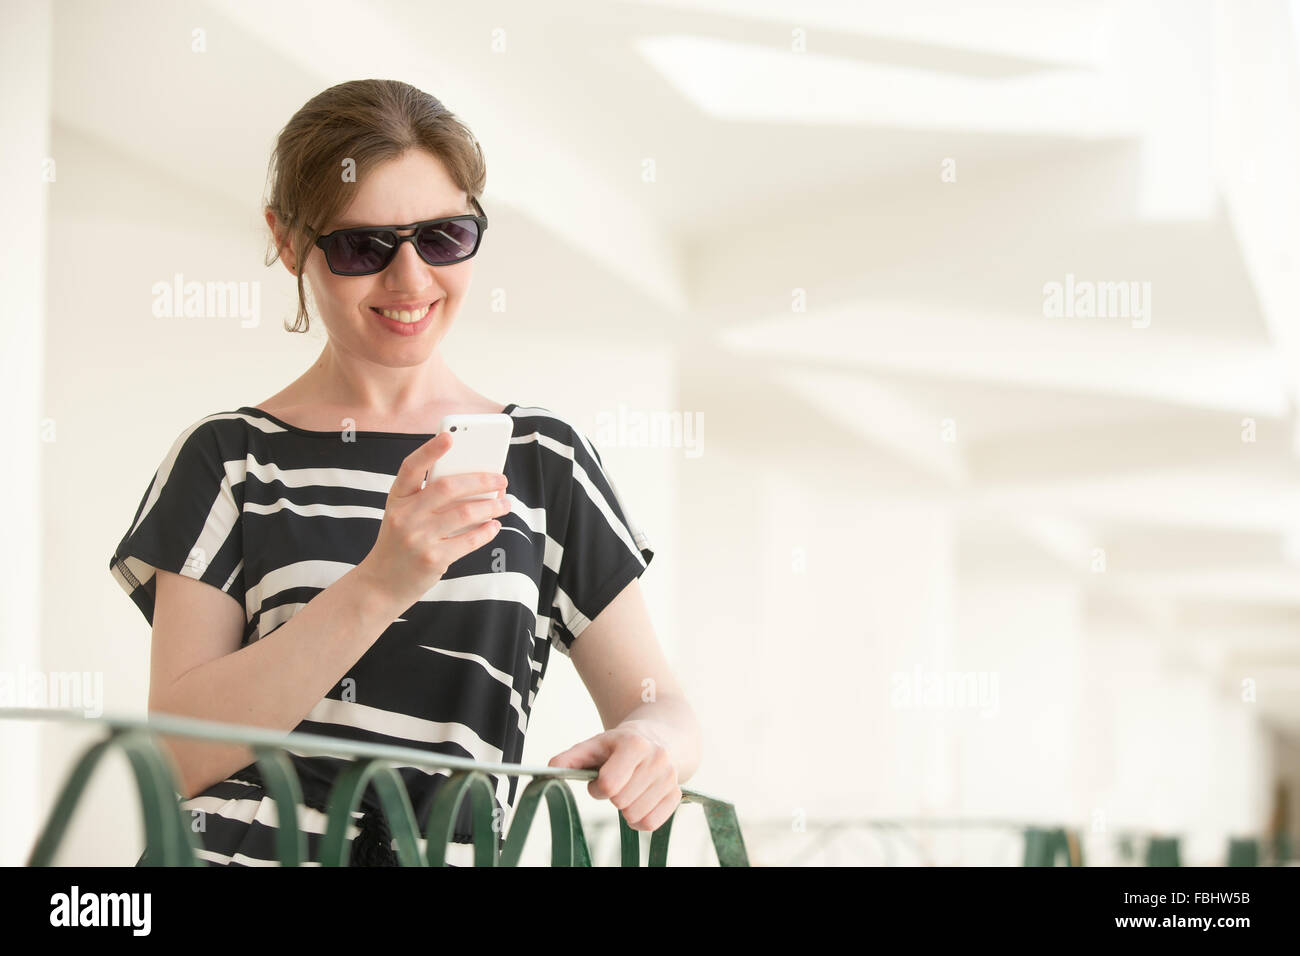 8f69075e045 Portrait of young happy smiling woman in sunglasses and black and white summer  dress standing in